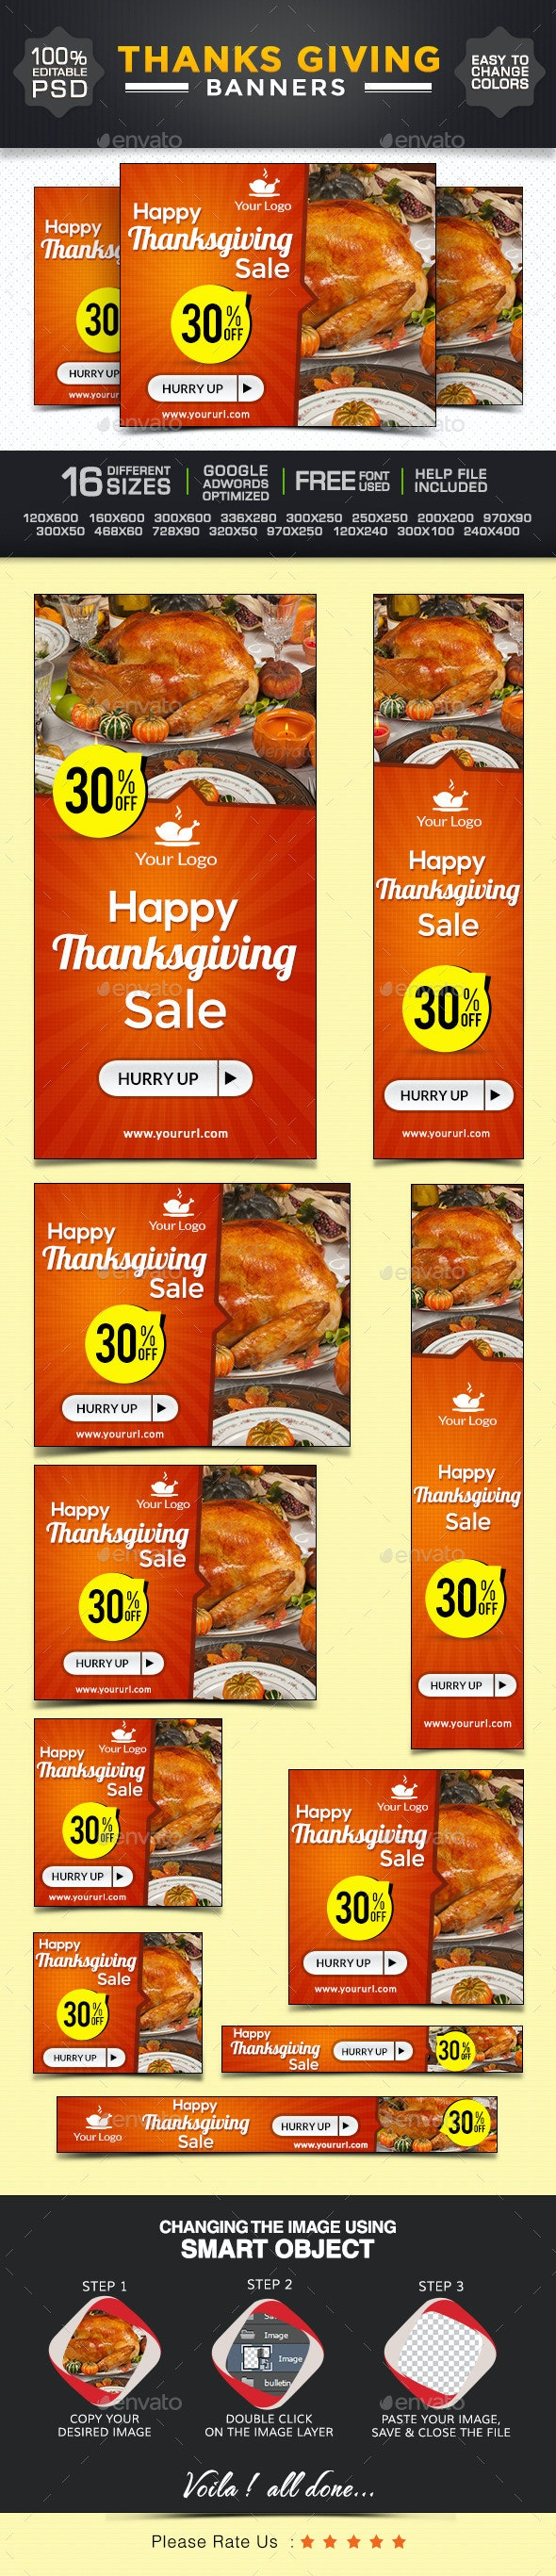 Thanksgiving Web Banner Design - Banners & Ads Web Elements